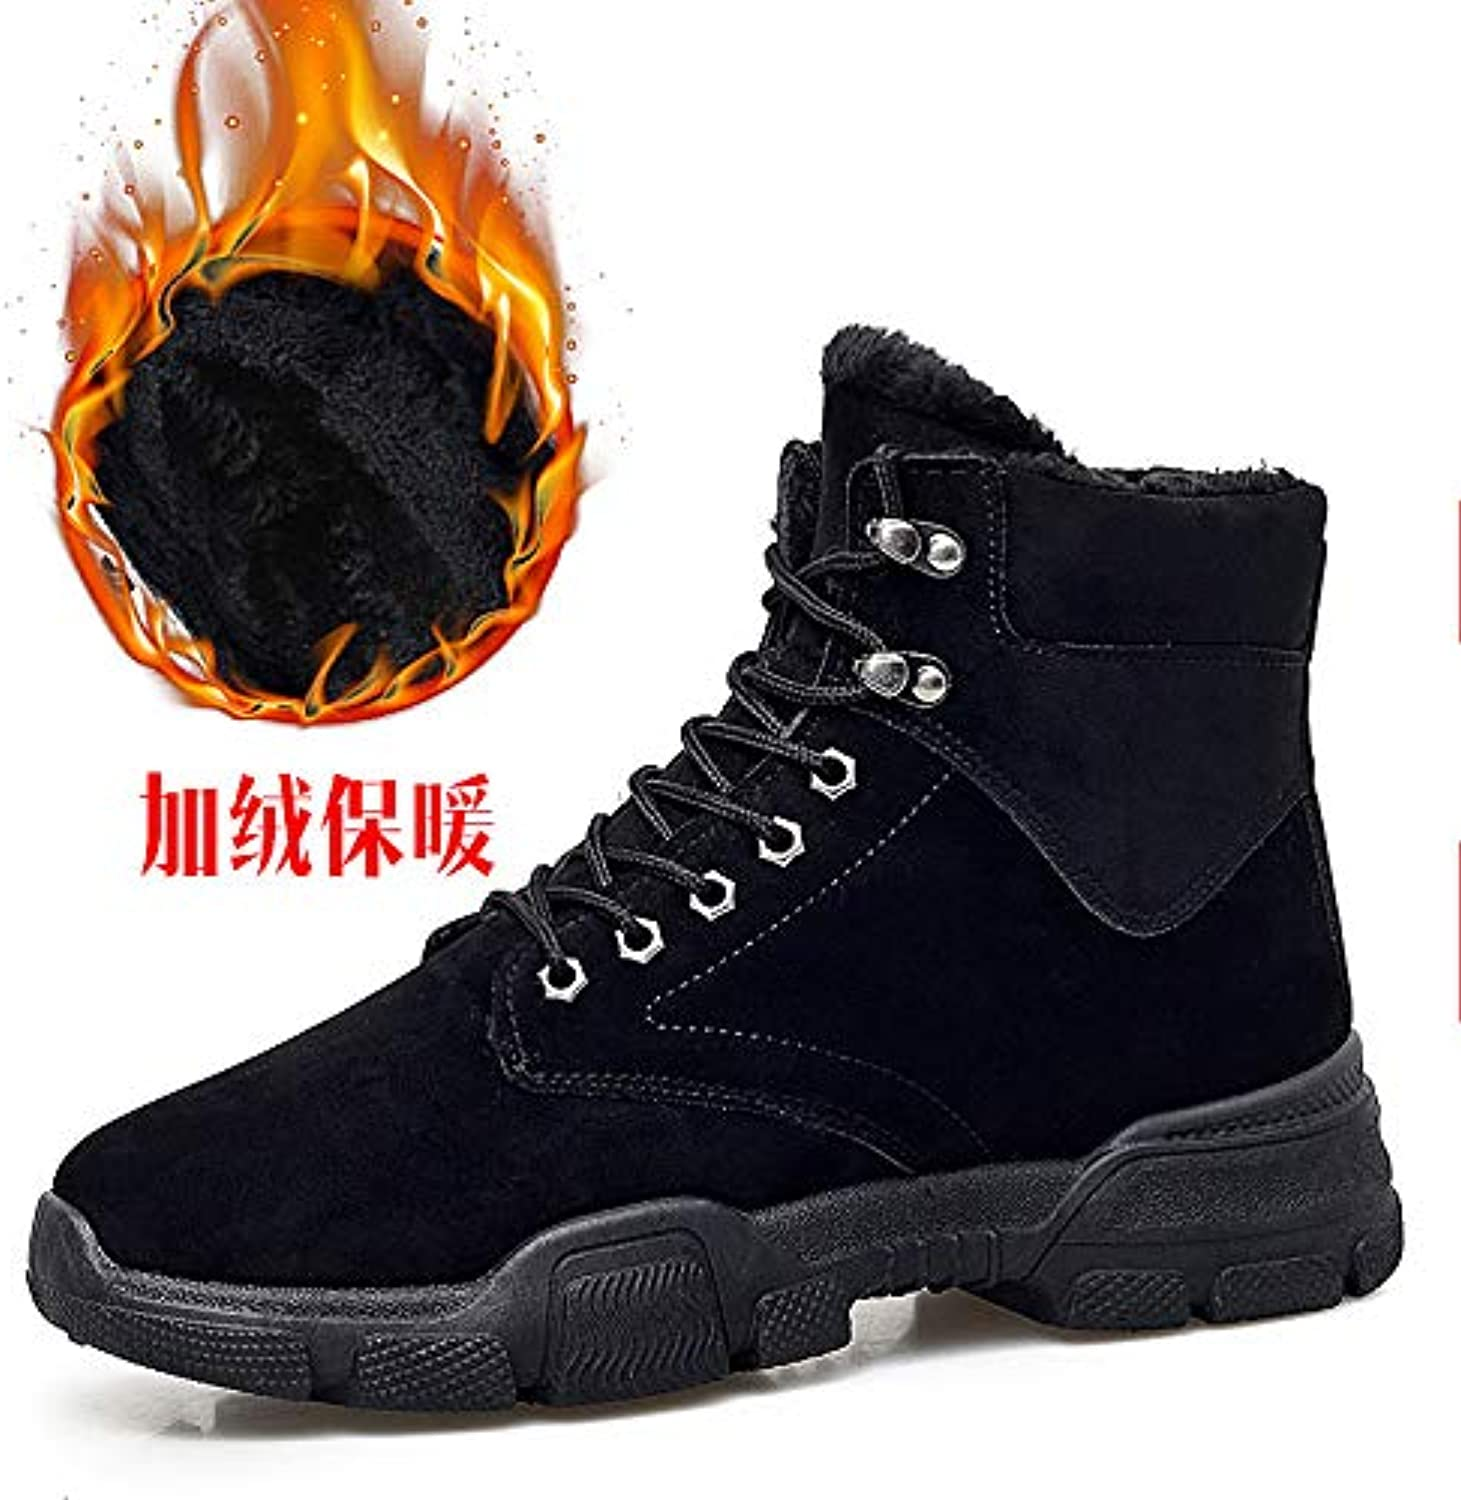 LOVDRAM Boots Men's Winter Men'S Boots Warm Military Boots Fashion Men'S shoes Fashion Leather Boots High To Help Casual Thick Men'S Martin Boots